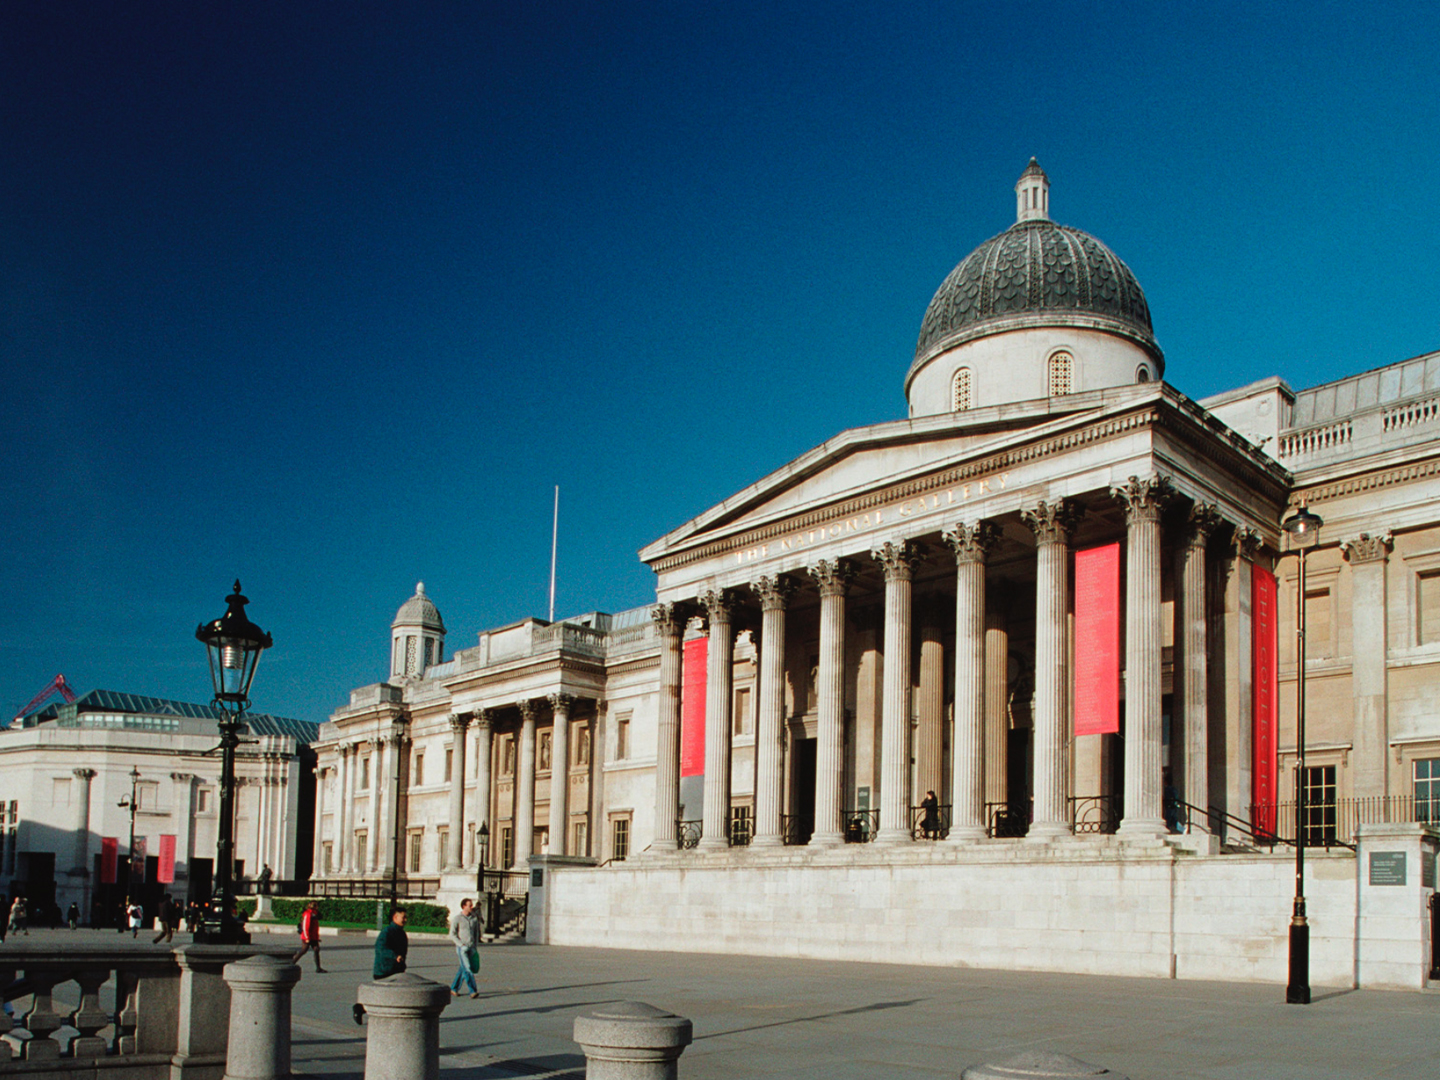 National Gallery picks six-team shortlist for bicentenary plans